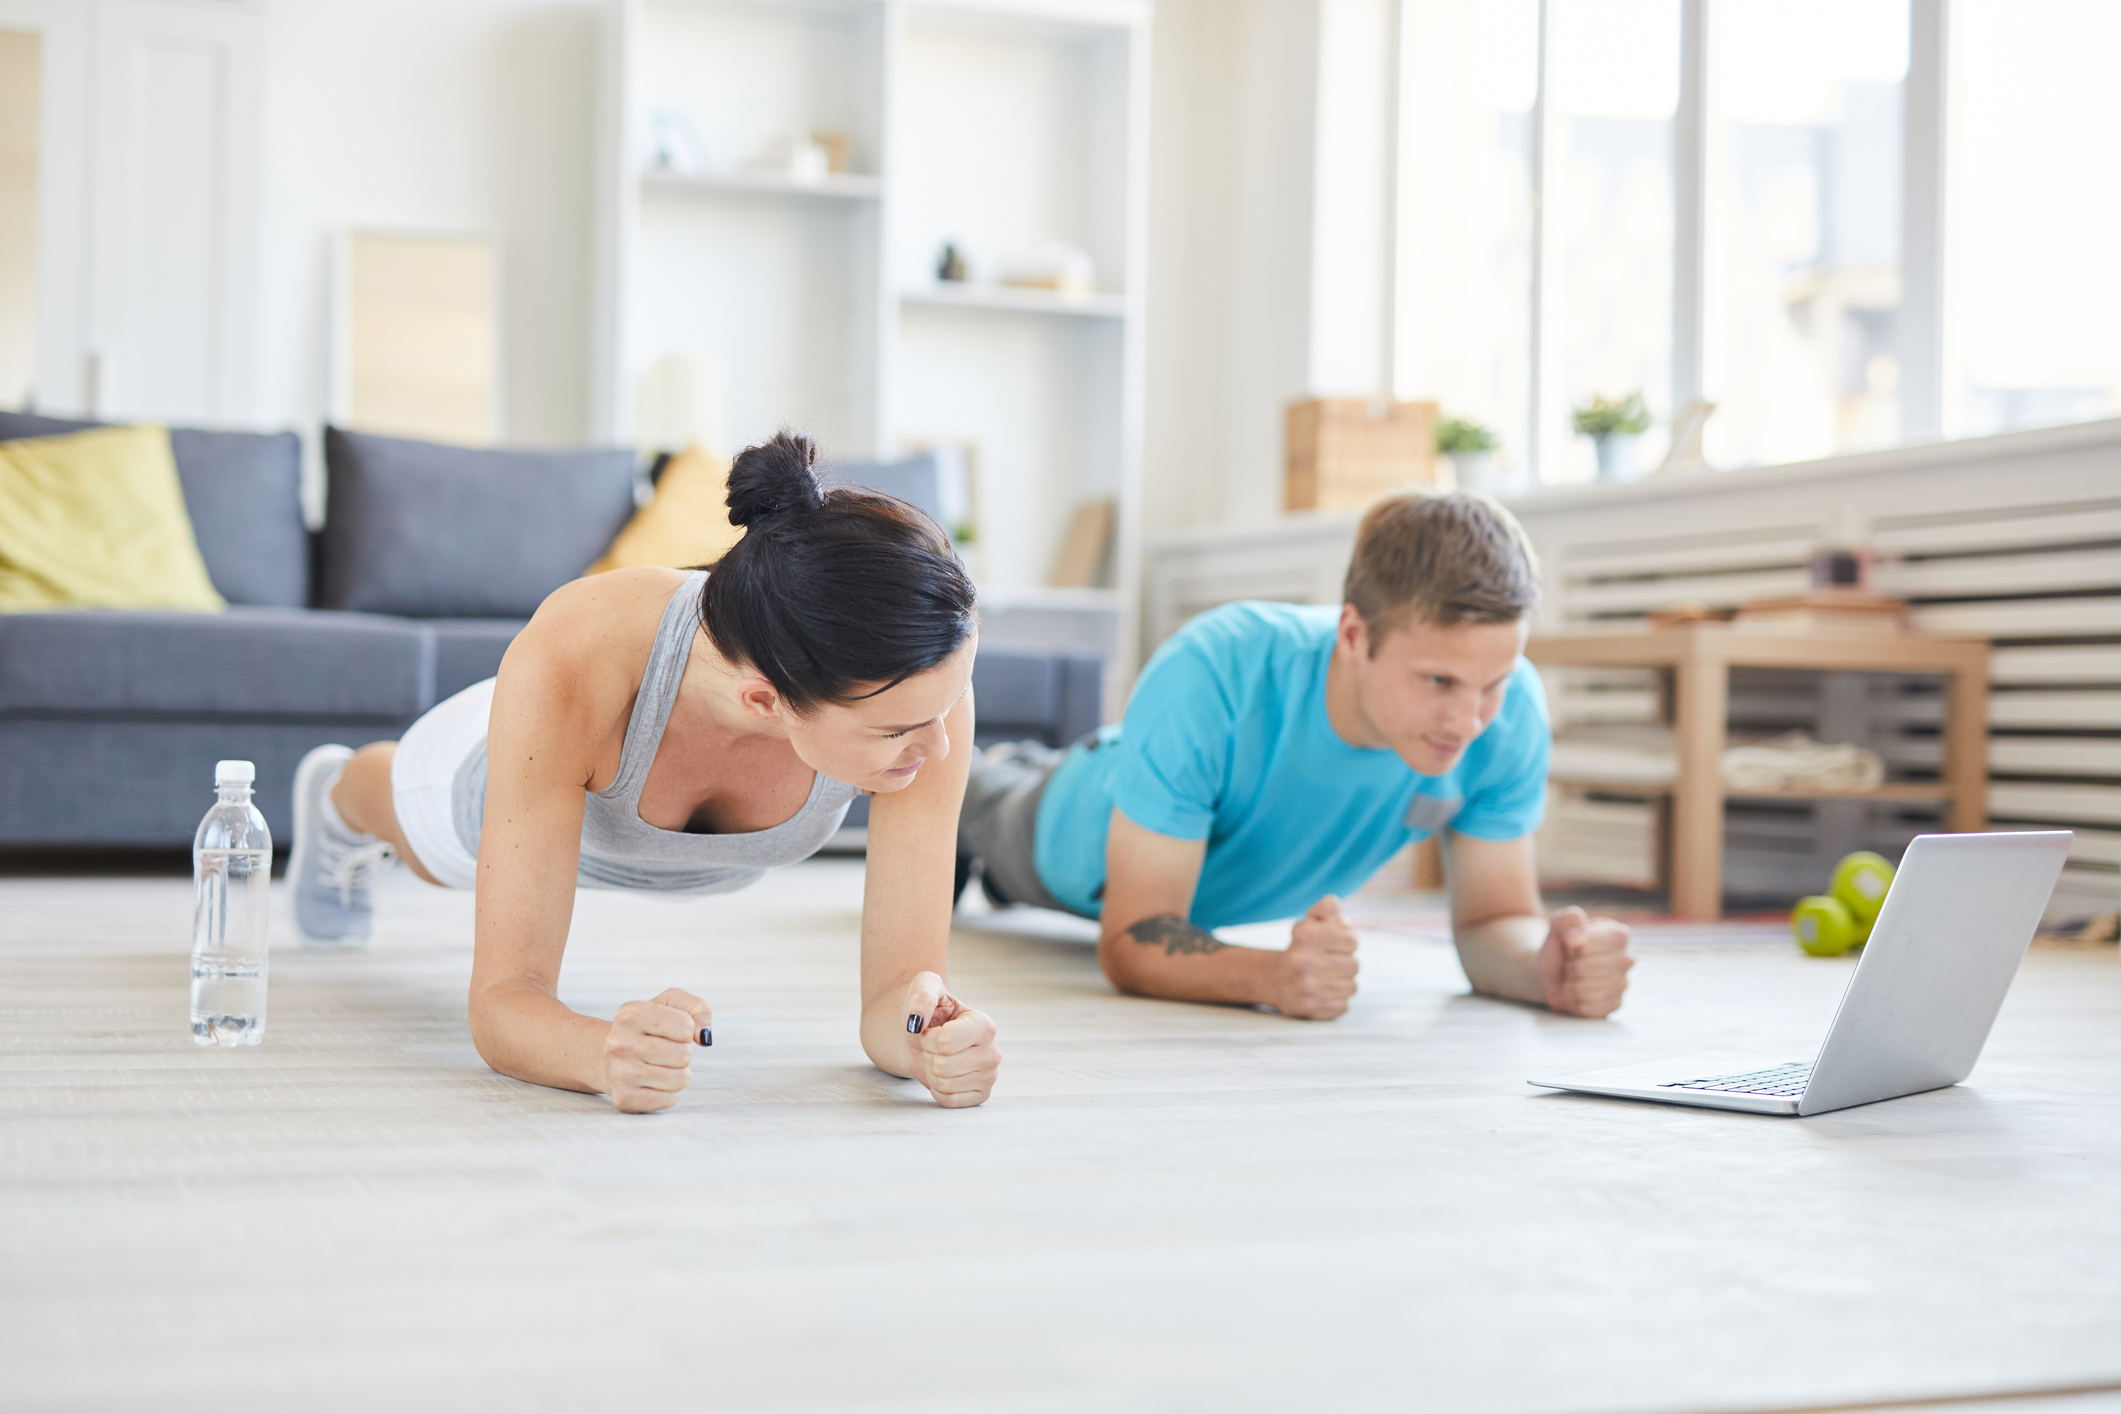 Man and woman working out in living room